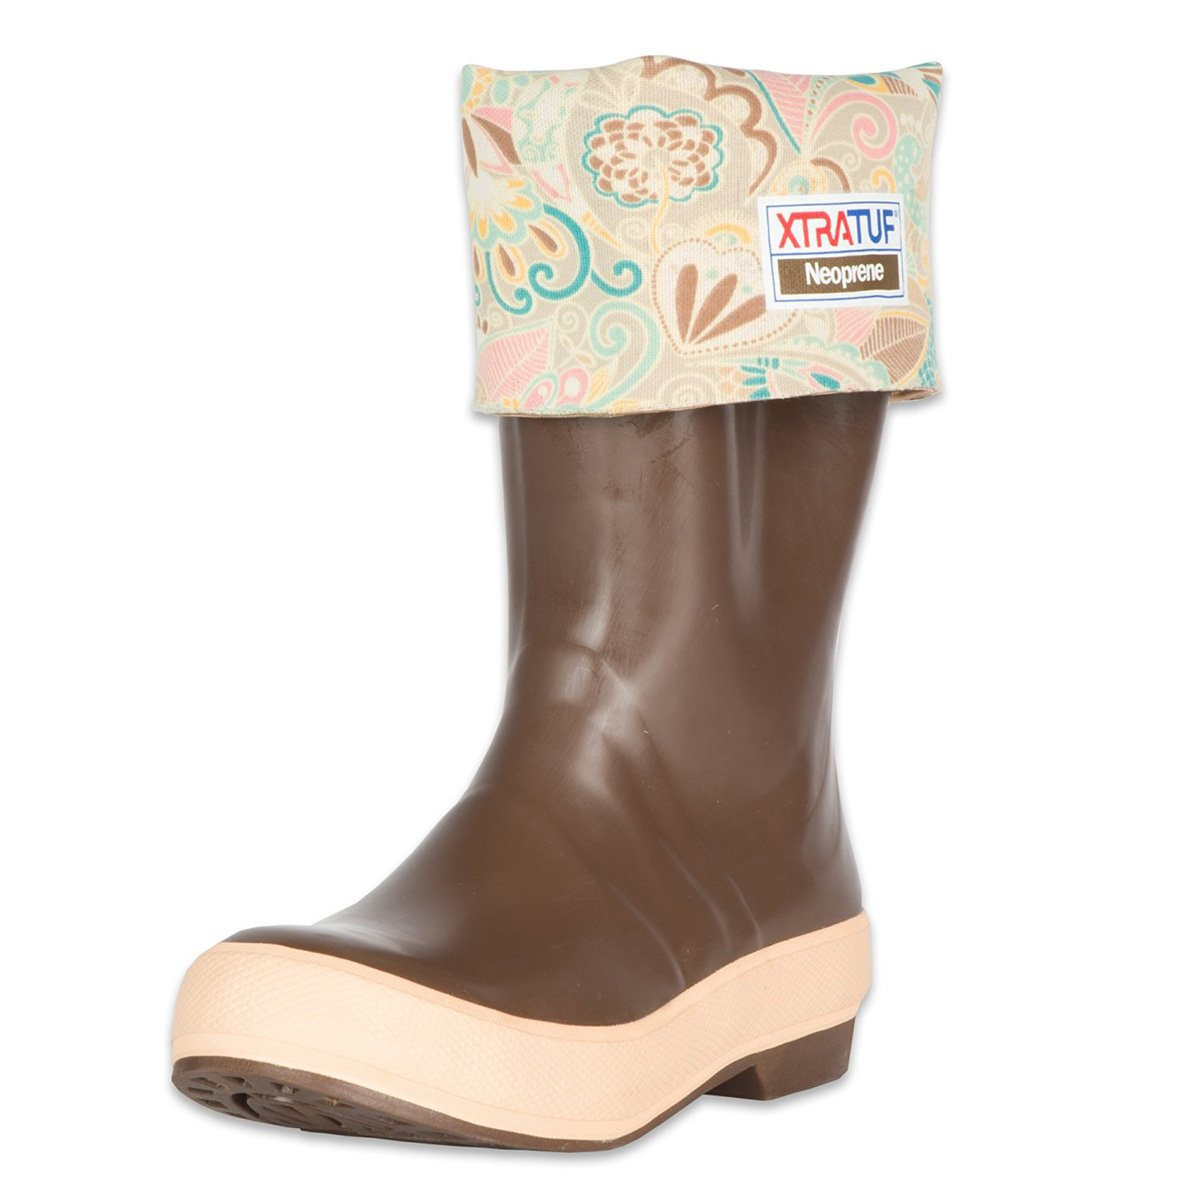 XTRATUF Legacy Series 15'' Floral Print-Lined Neoprene Women's Fishing Boots, Copper & Tan (22812G)